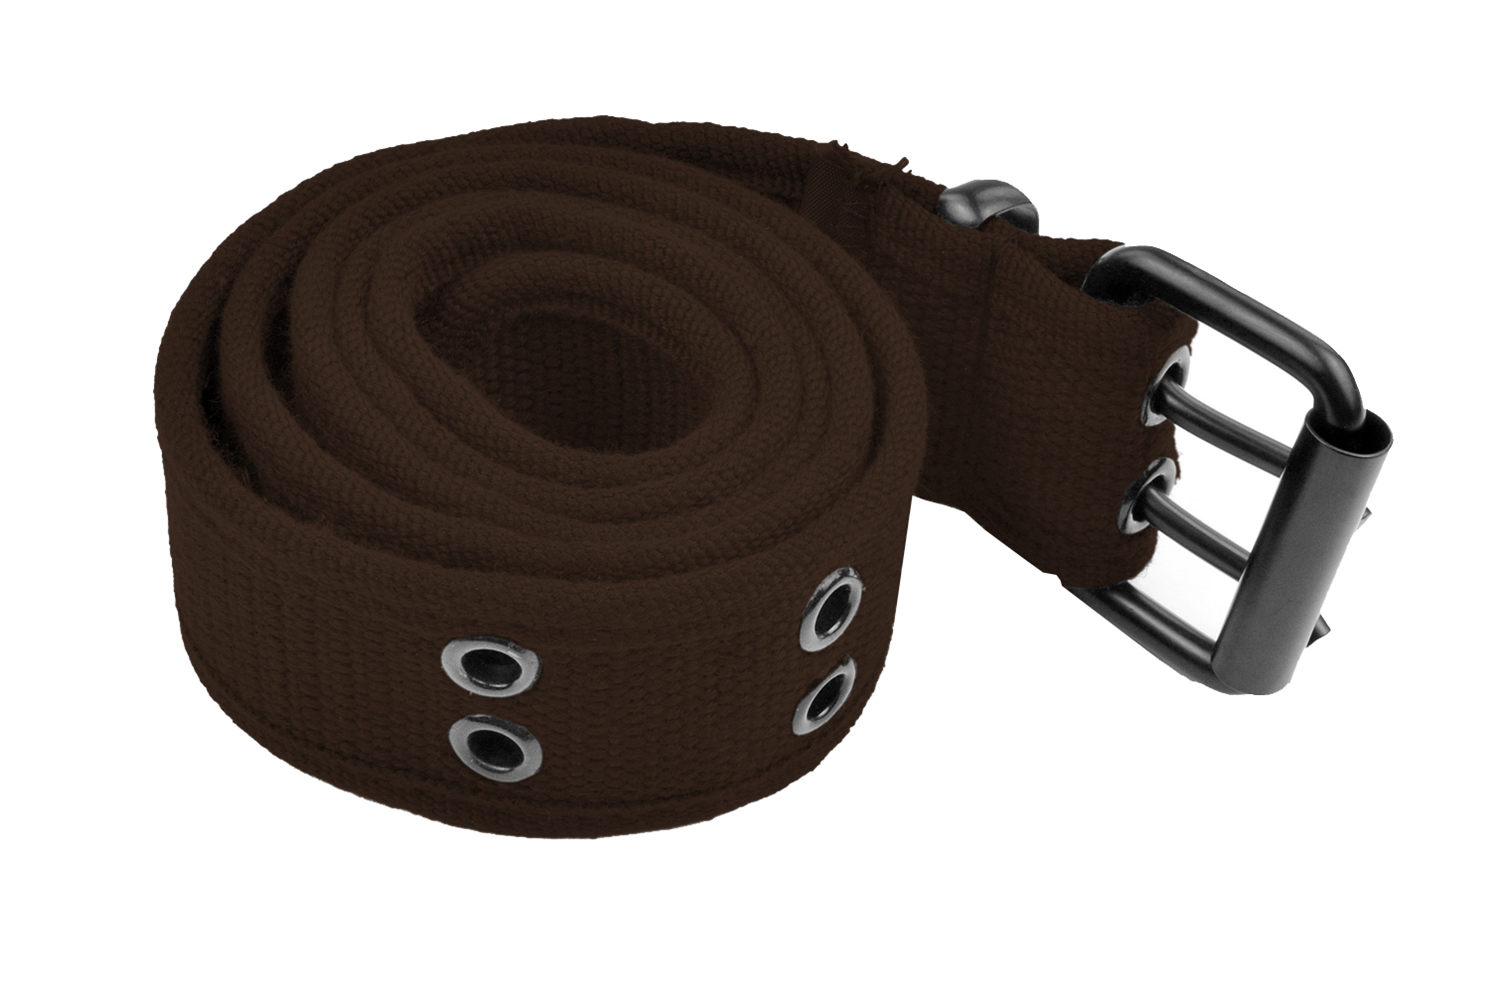 Grommet Belt for Women & Men - Double Hole Grommets Canvas Web Belts - Military Style Belt - 2 Prong Buckle by Belle Donne - Brown